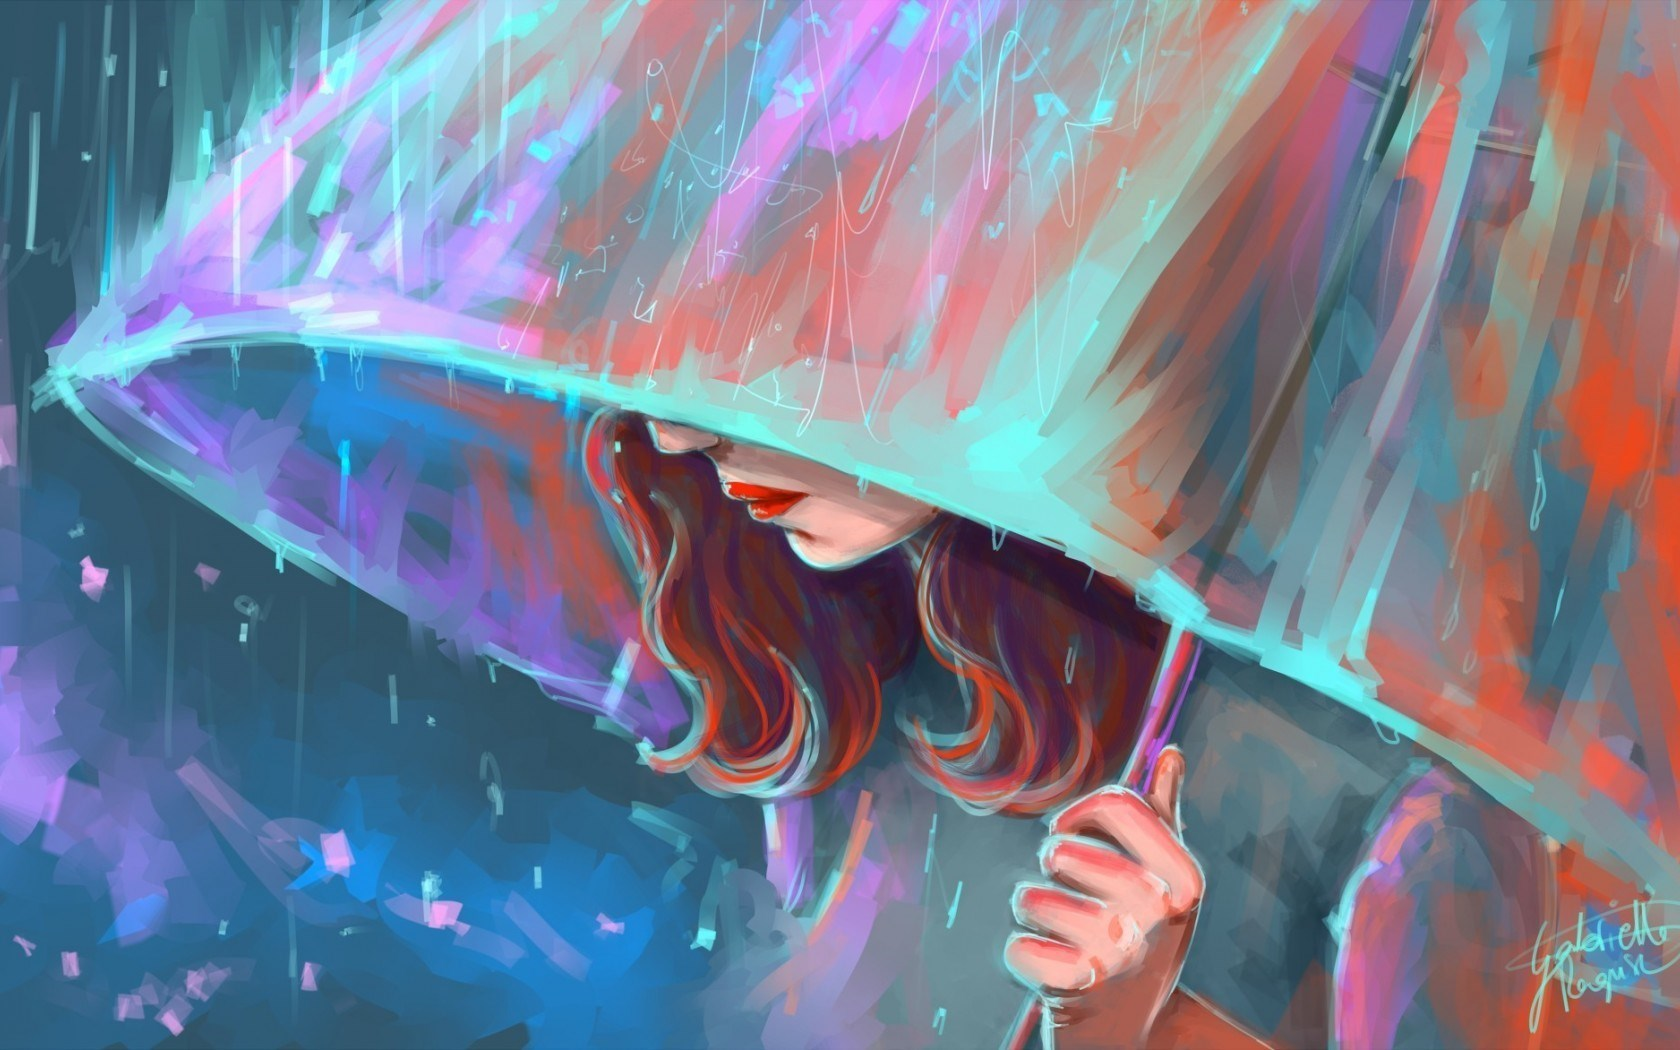 Art Umbrella Rain Girl Wallpapers - Free HD Wallpaper Download